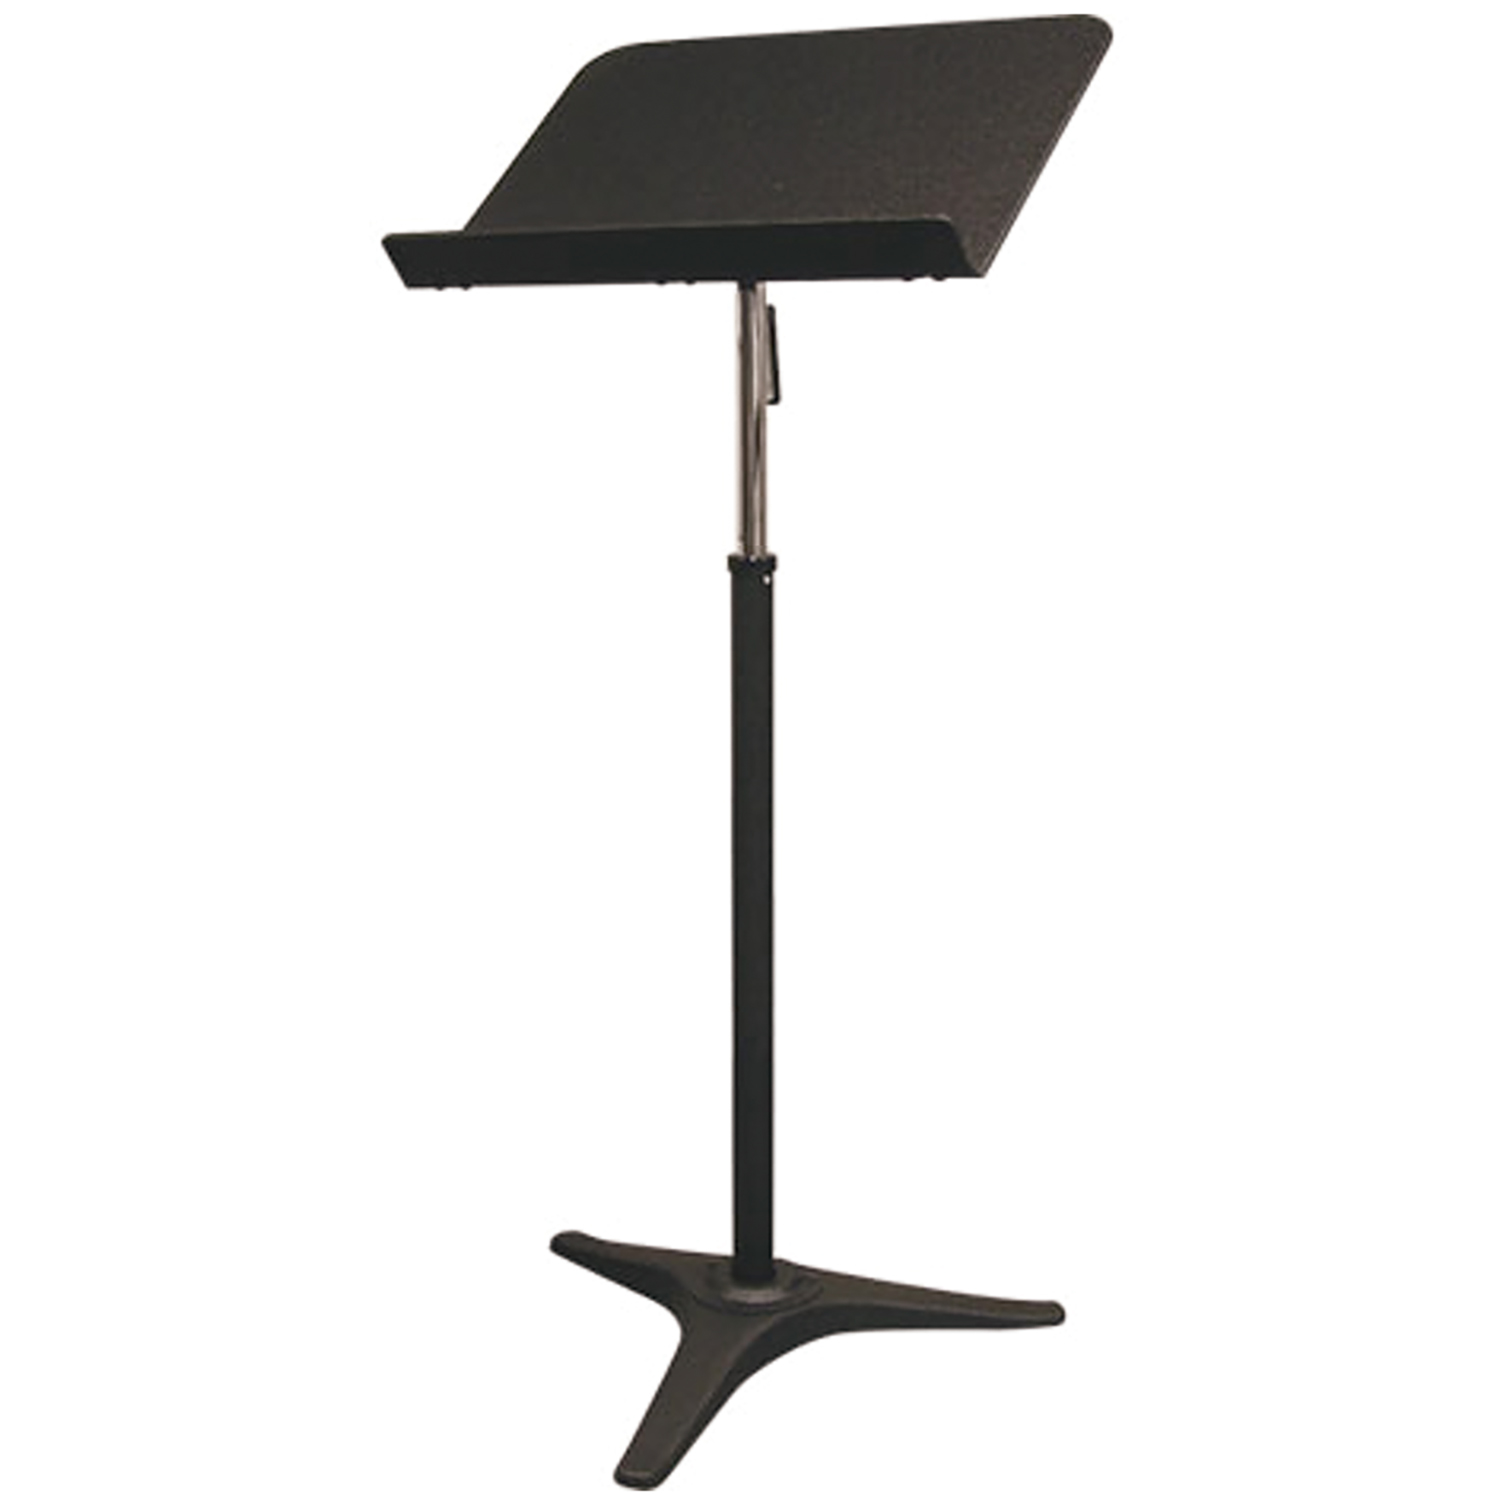 "Hamilton ""The Trigger"" HD Symphonic Stand by Hamilton Stands"